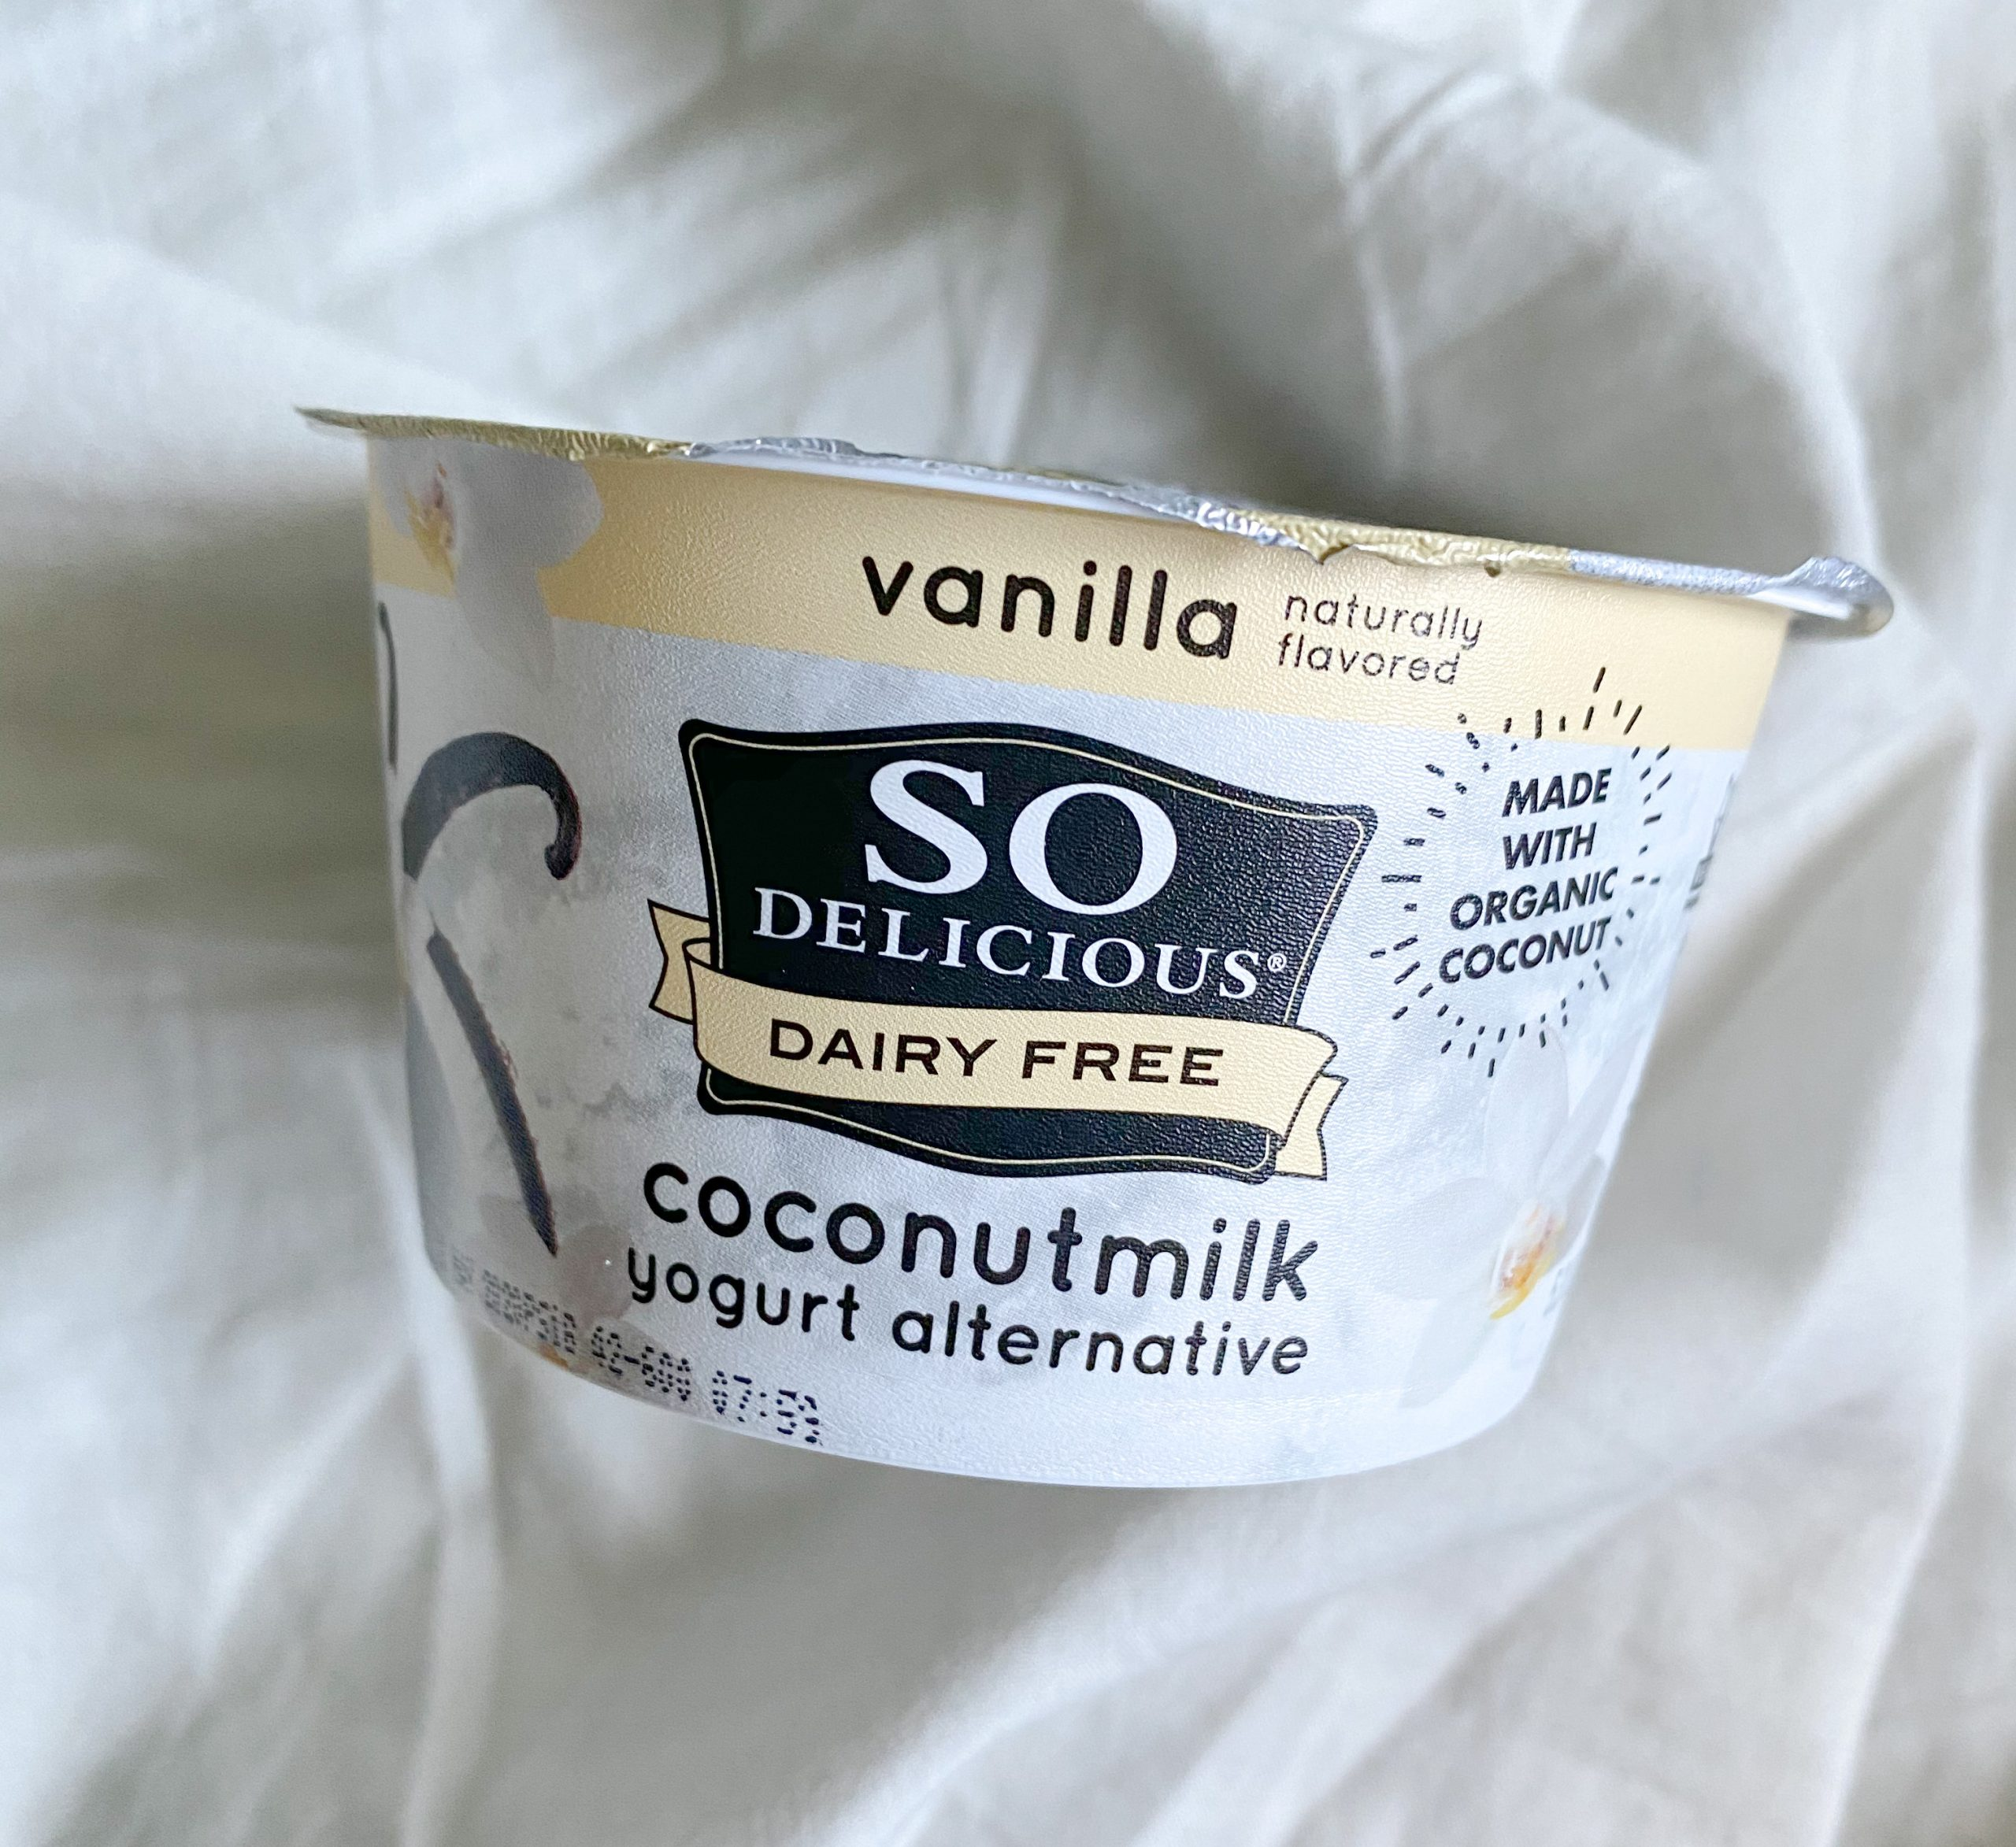 So Delicious Dairy Free Yogurt